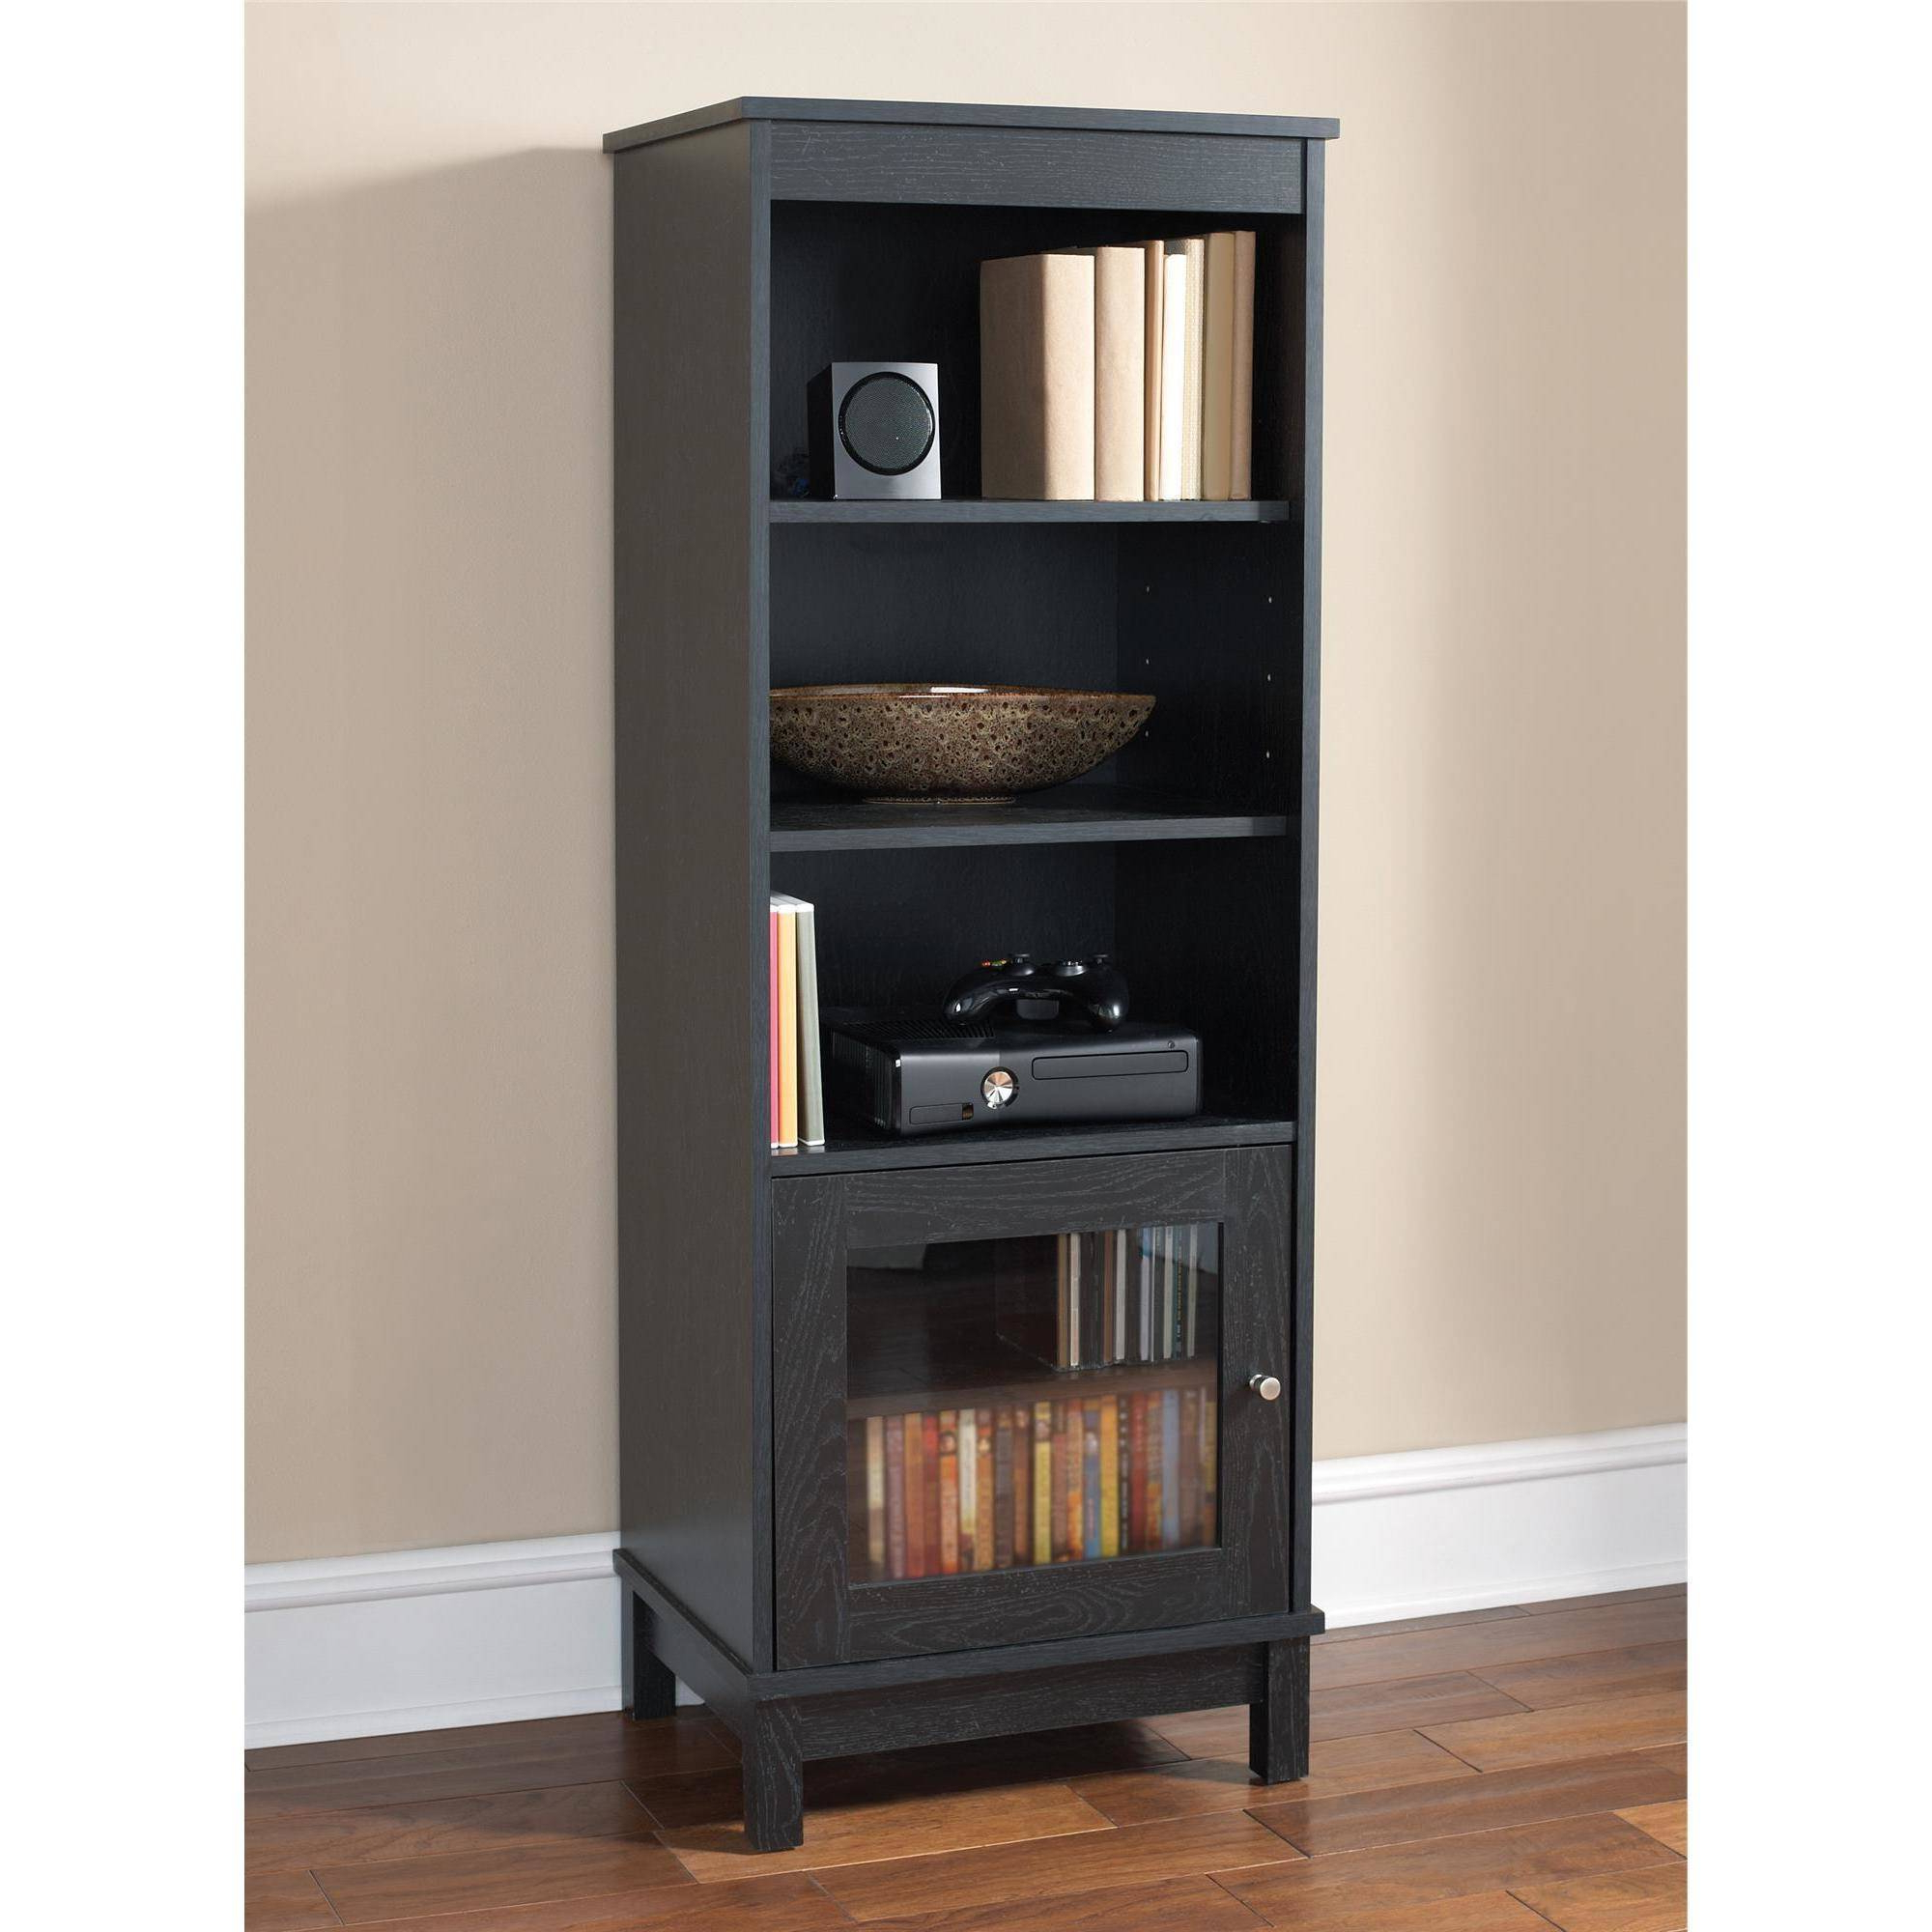 Mainstays Media Storage Bookcase, Multiple Finishes Intended For Mainstays Tv Stands For Tvs With Multiple Colors (View 17 of 20)